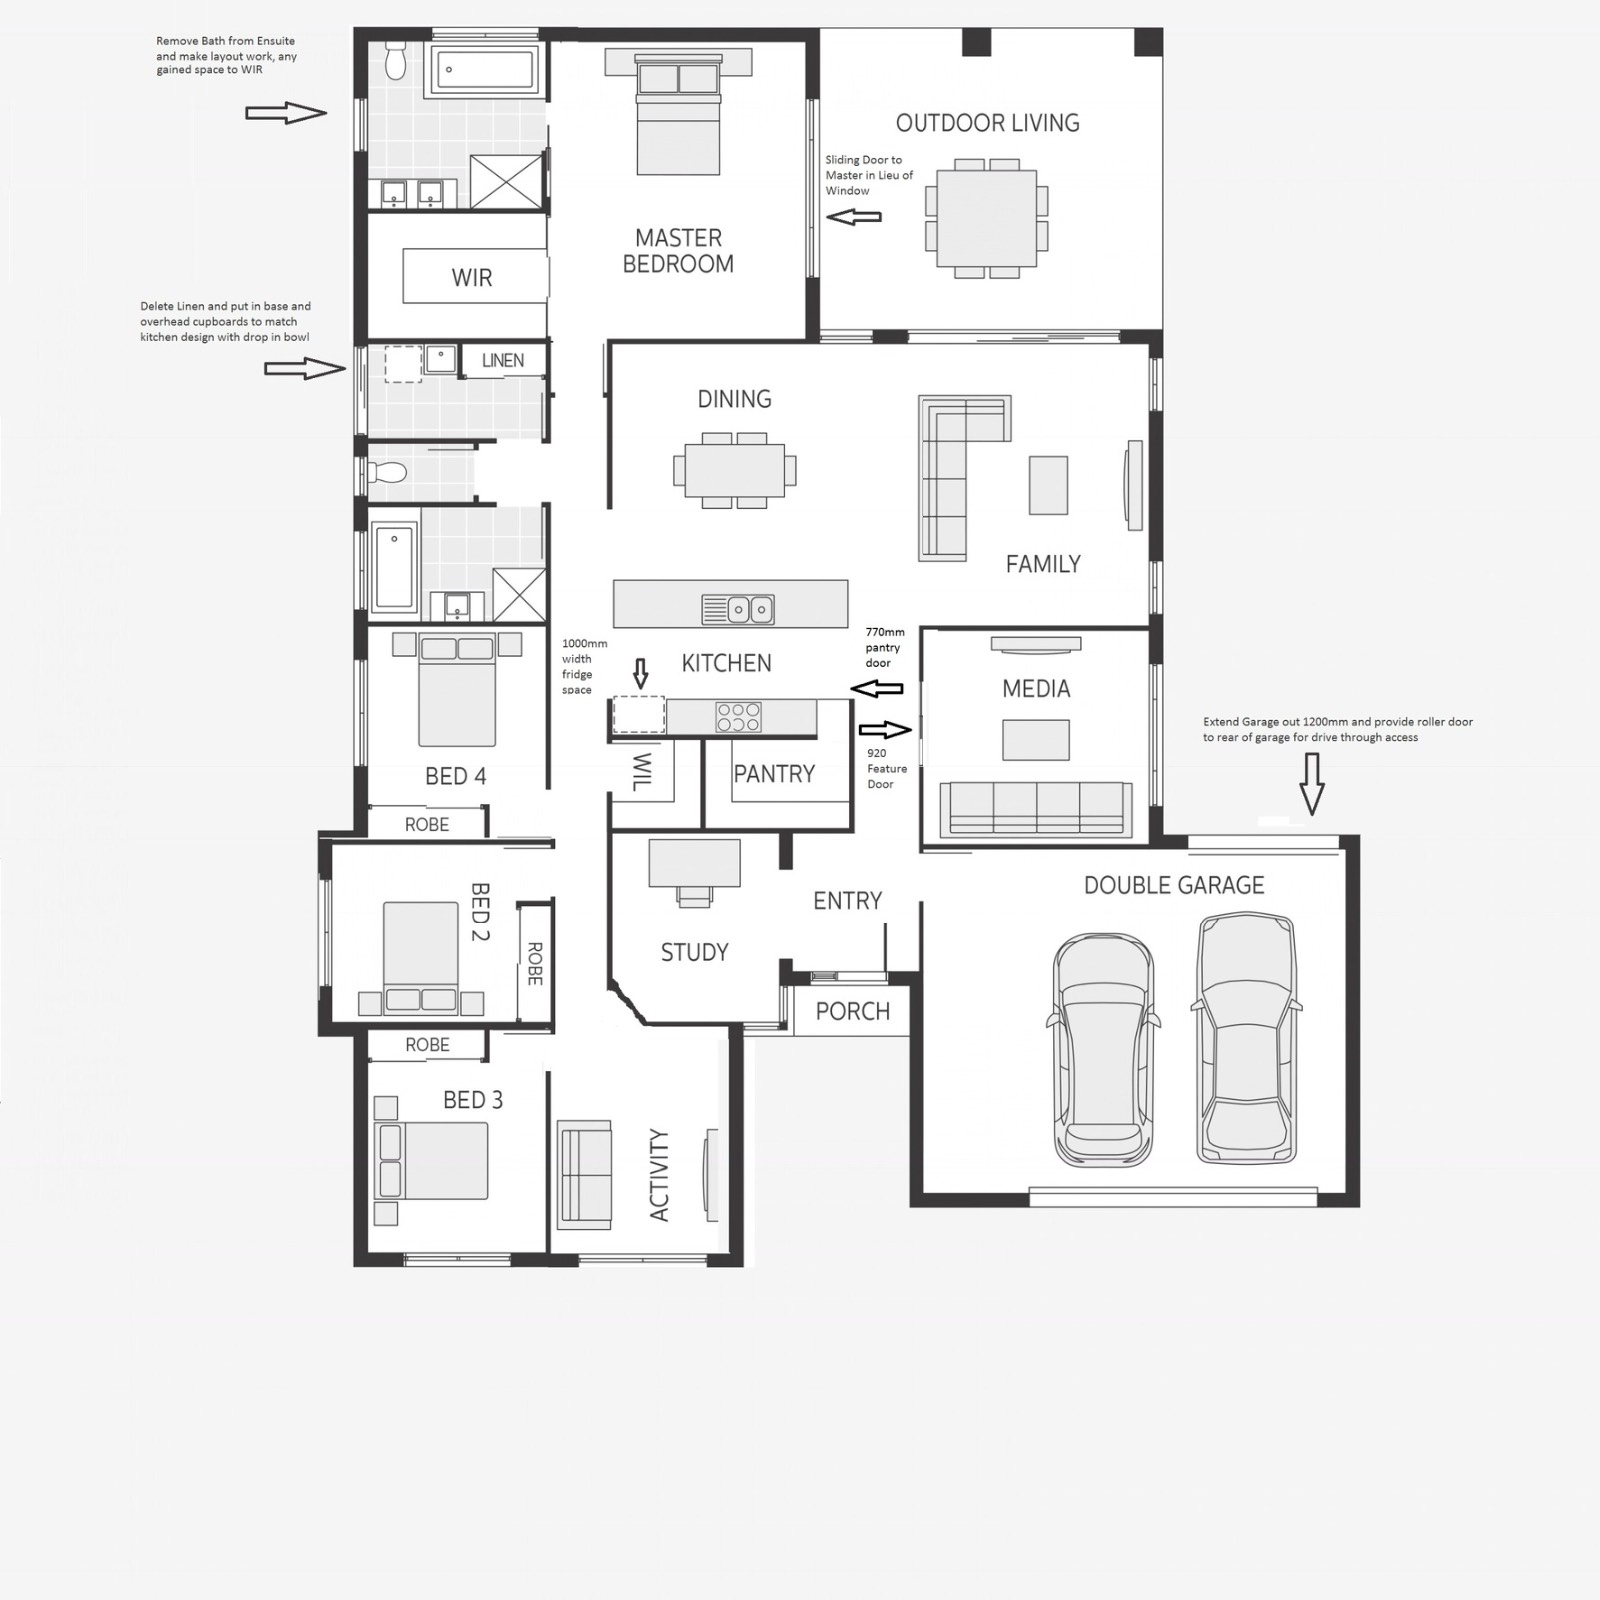 View Topic Allworth Carlisle Build In Western Sydney Home Renovation Building Forum